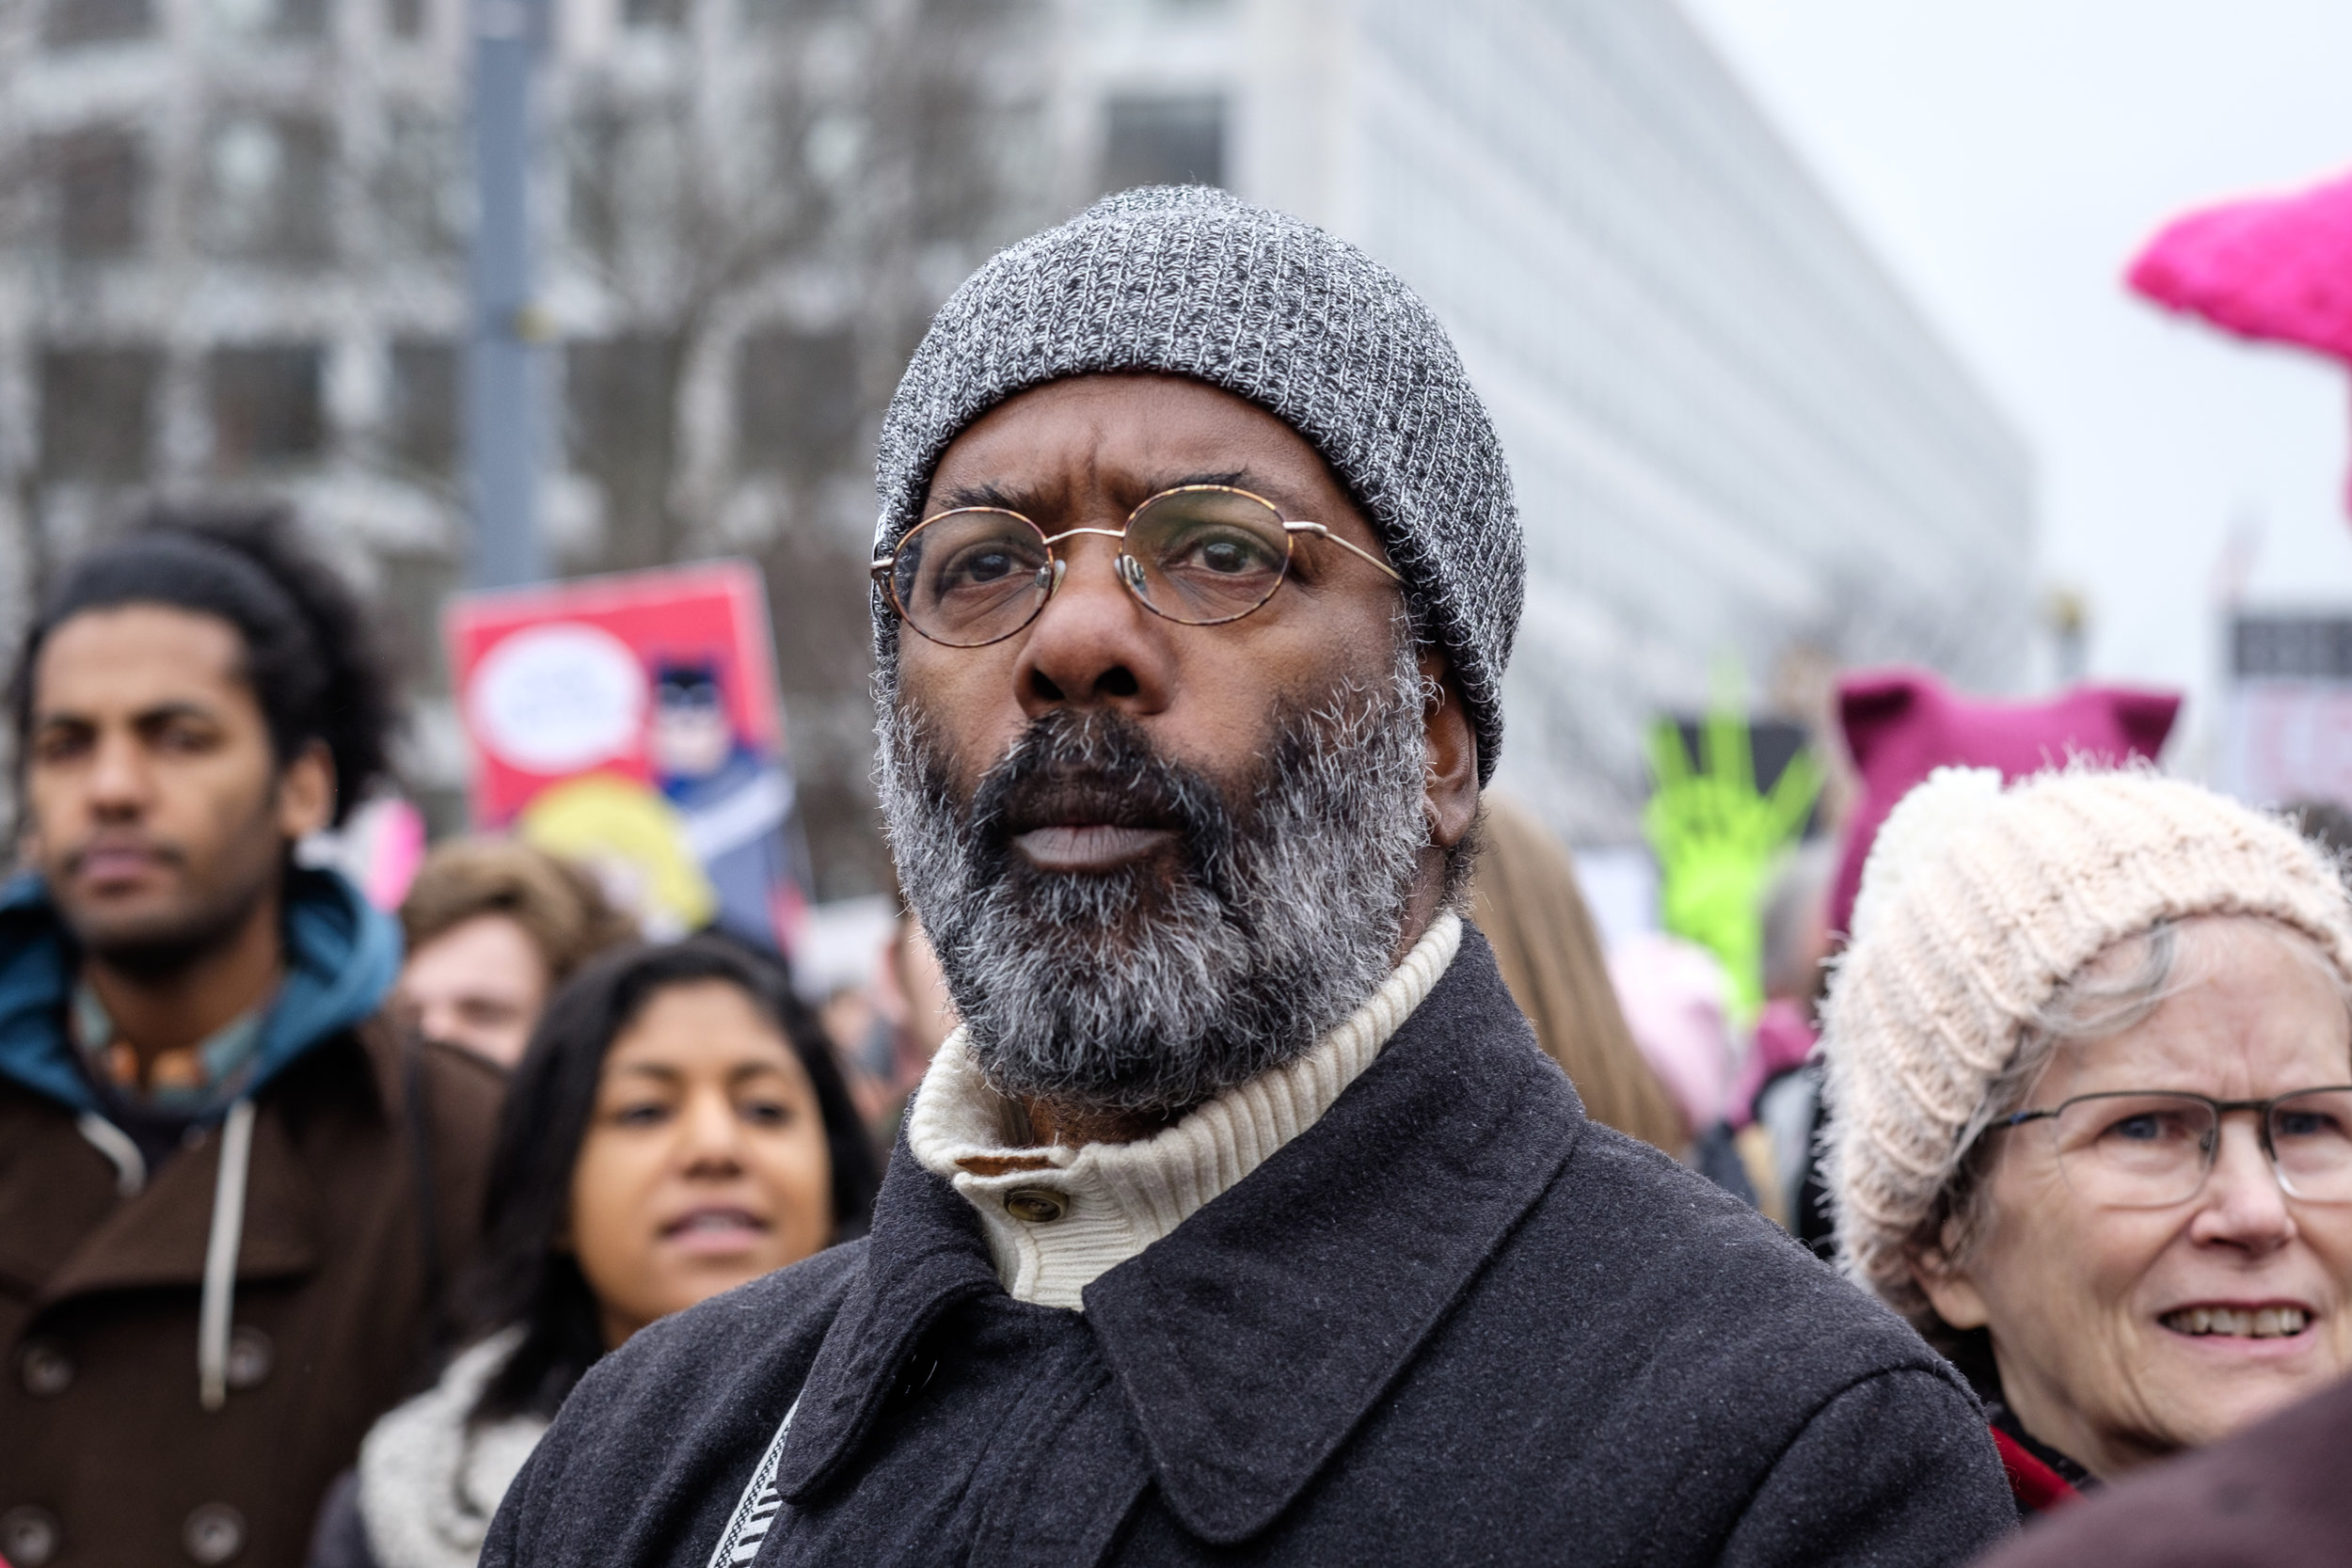 "A man listens to speakers at the first-ever Women's March on Washington on Saturday, January 21, 2017. It is estimated that over 500,000 marched, and well over 1 million people world-wide. People came together to proclaim unity and to stand firm on the principles of human rights. ""Women's Rights are Human Rights and Human Rights are Women's Rights."""